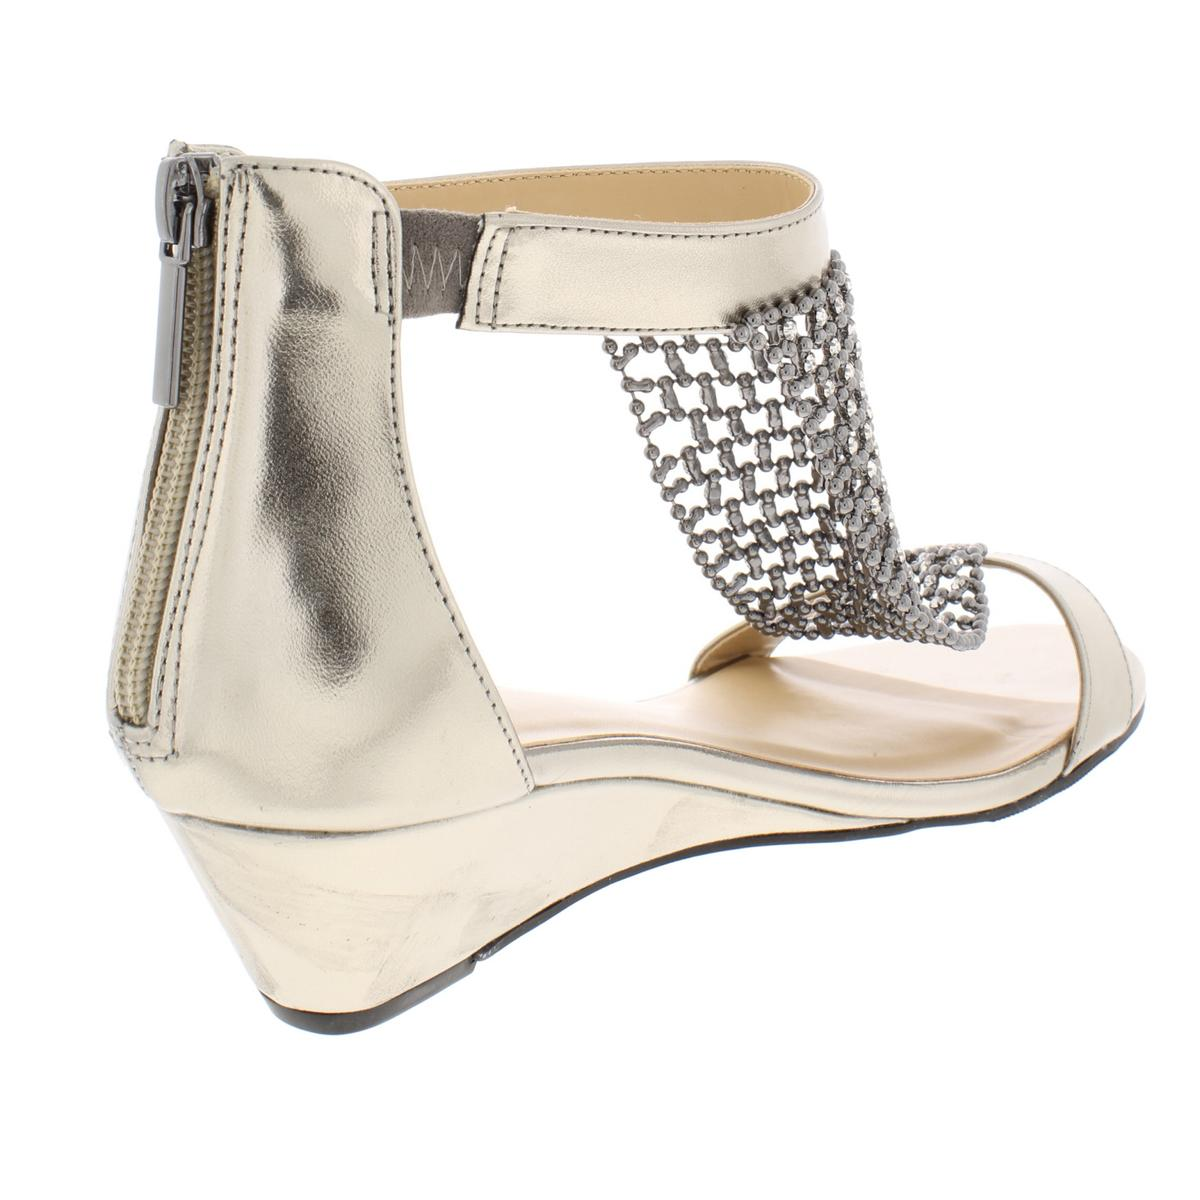 Thalia-Sodi-Womens-Tibby-T-Strap-Embellished-Wedge-Sandals-Shoes-BHFO-5842 thumbnail 6